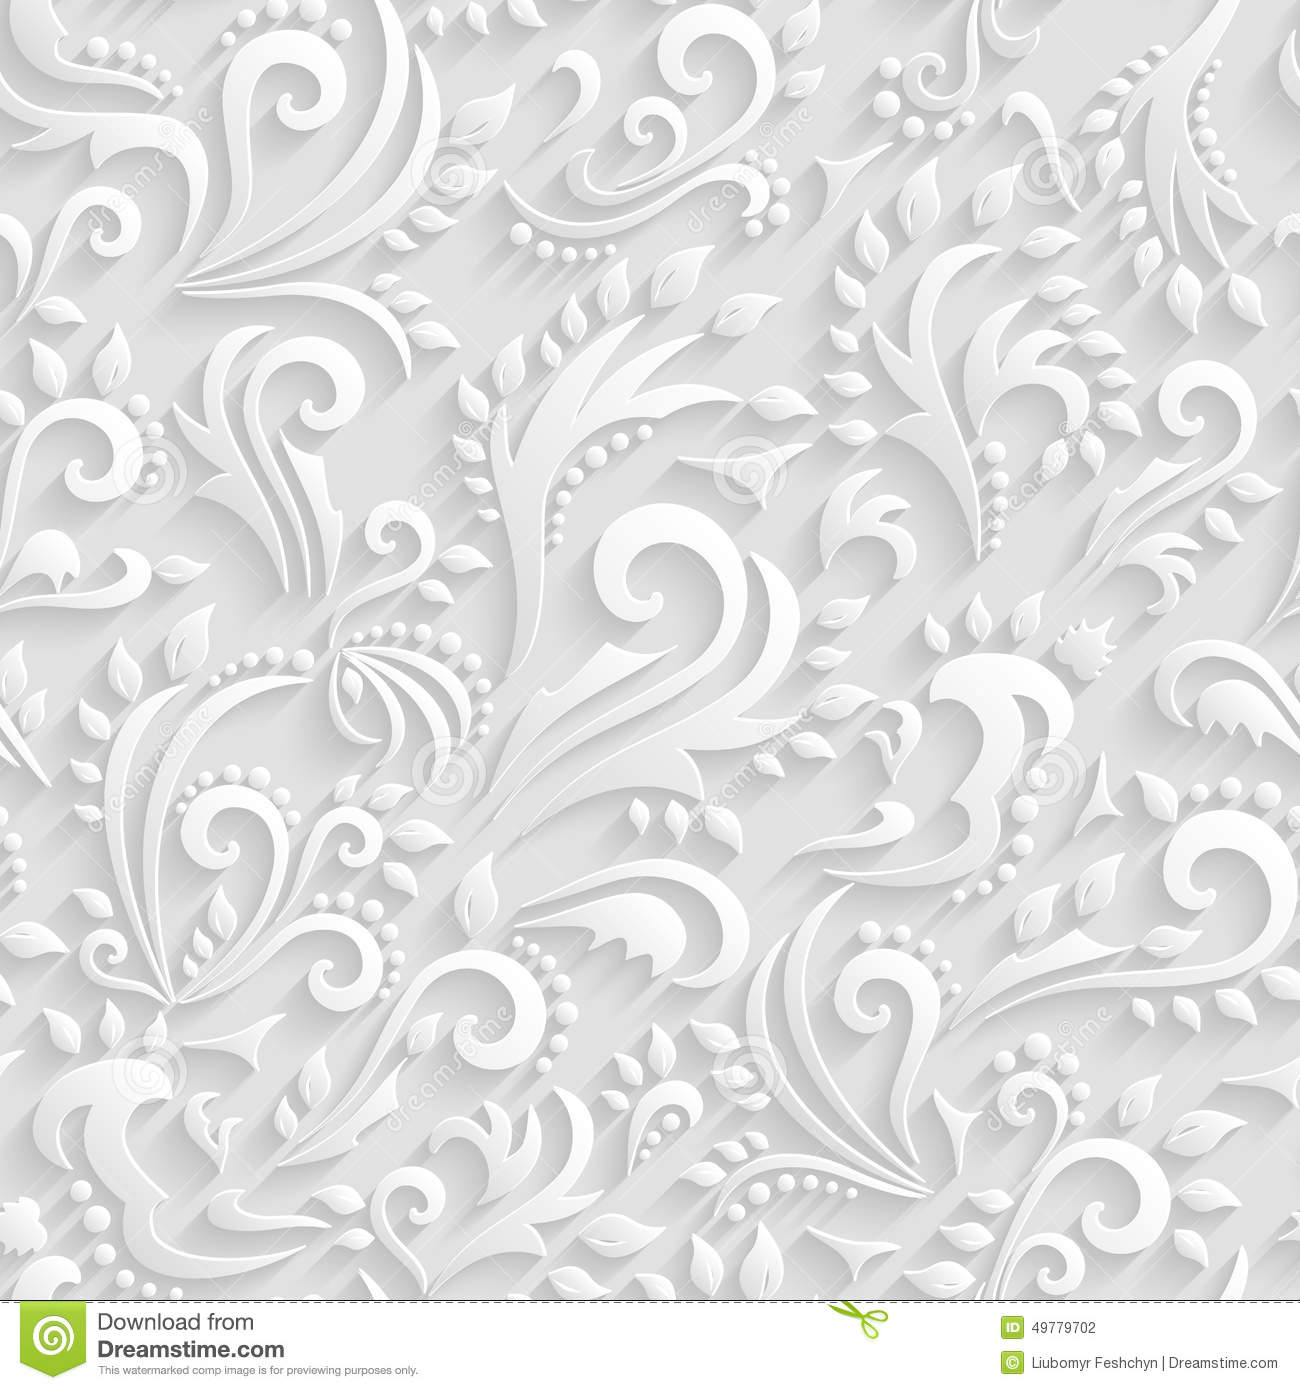 Purple And Black Damask Wallpaper Vector Floral Victorian Seamless Background Origami 3d